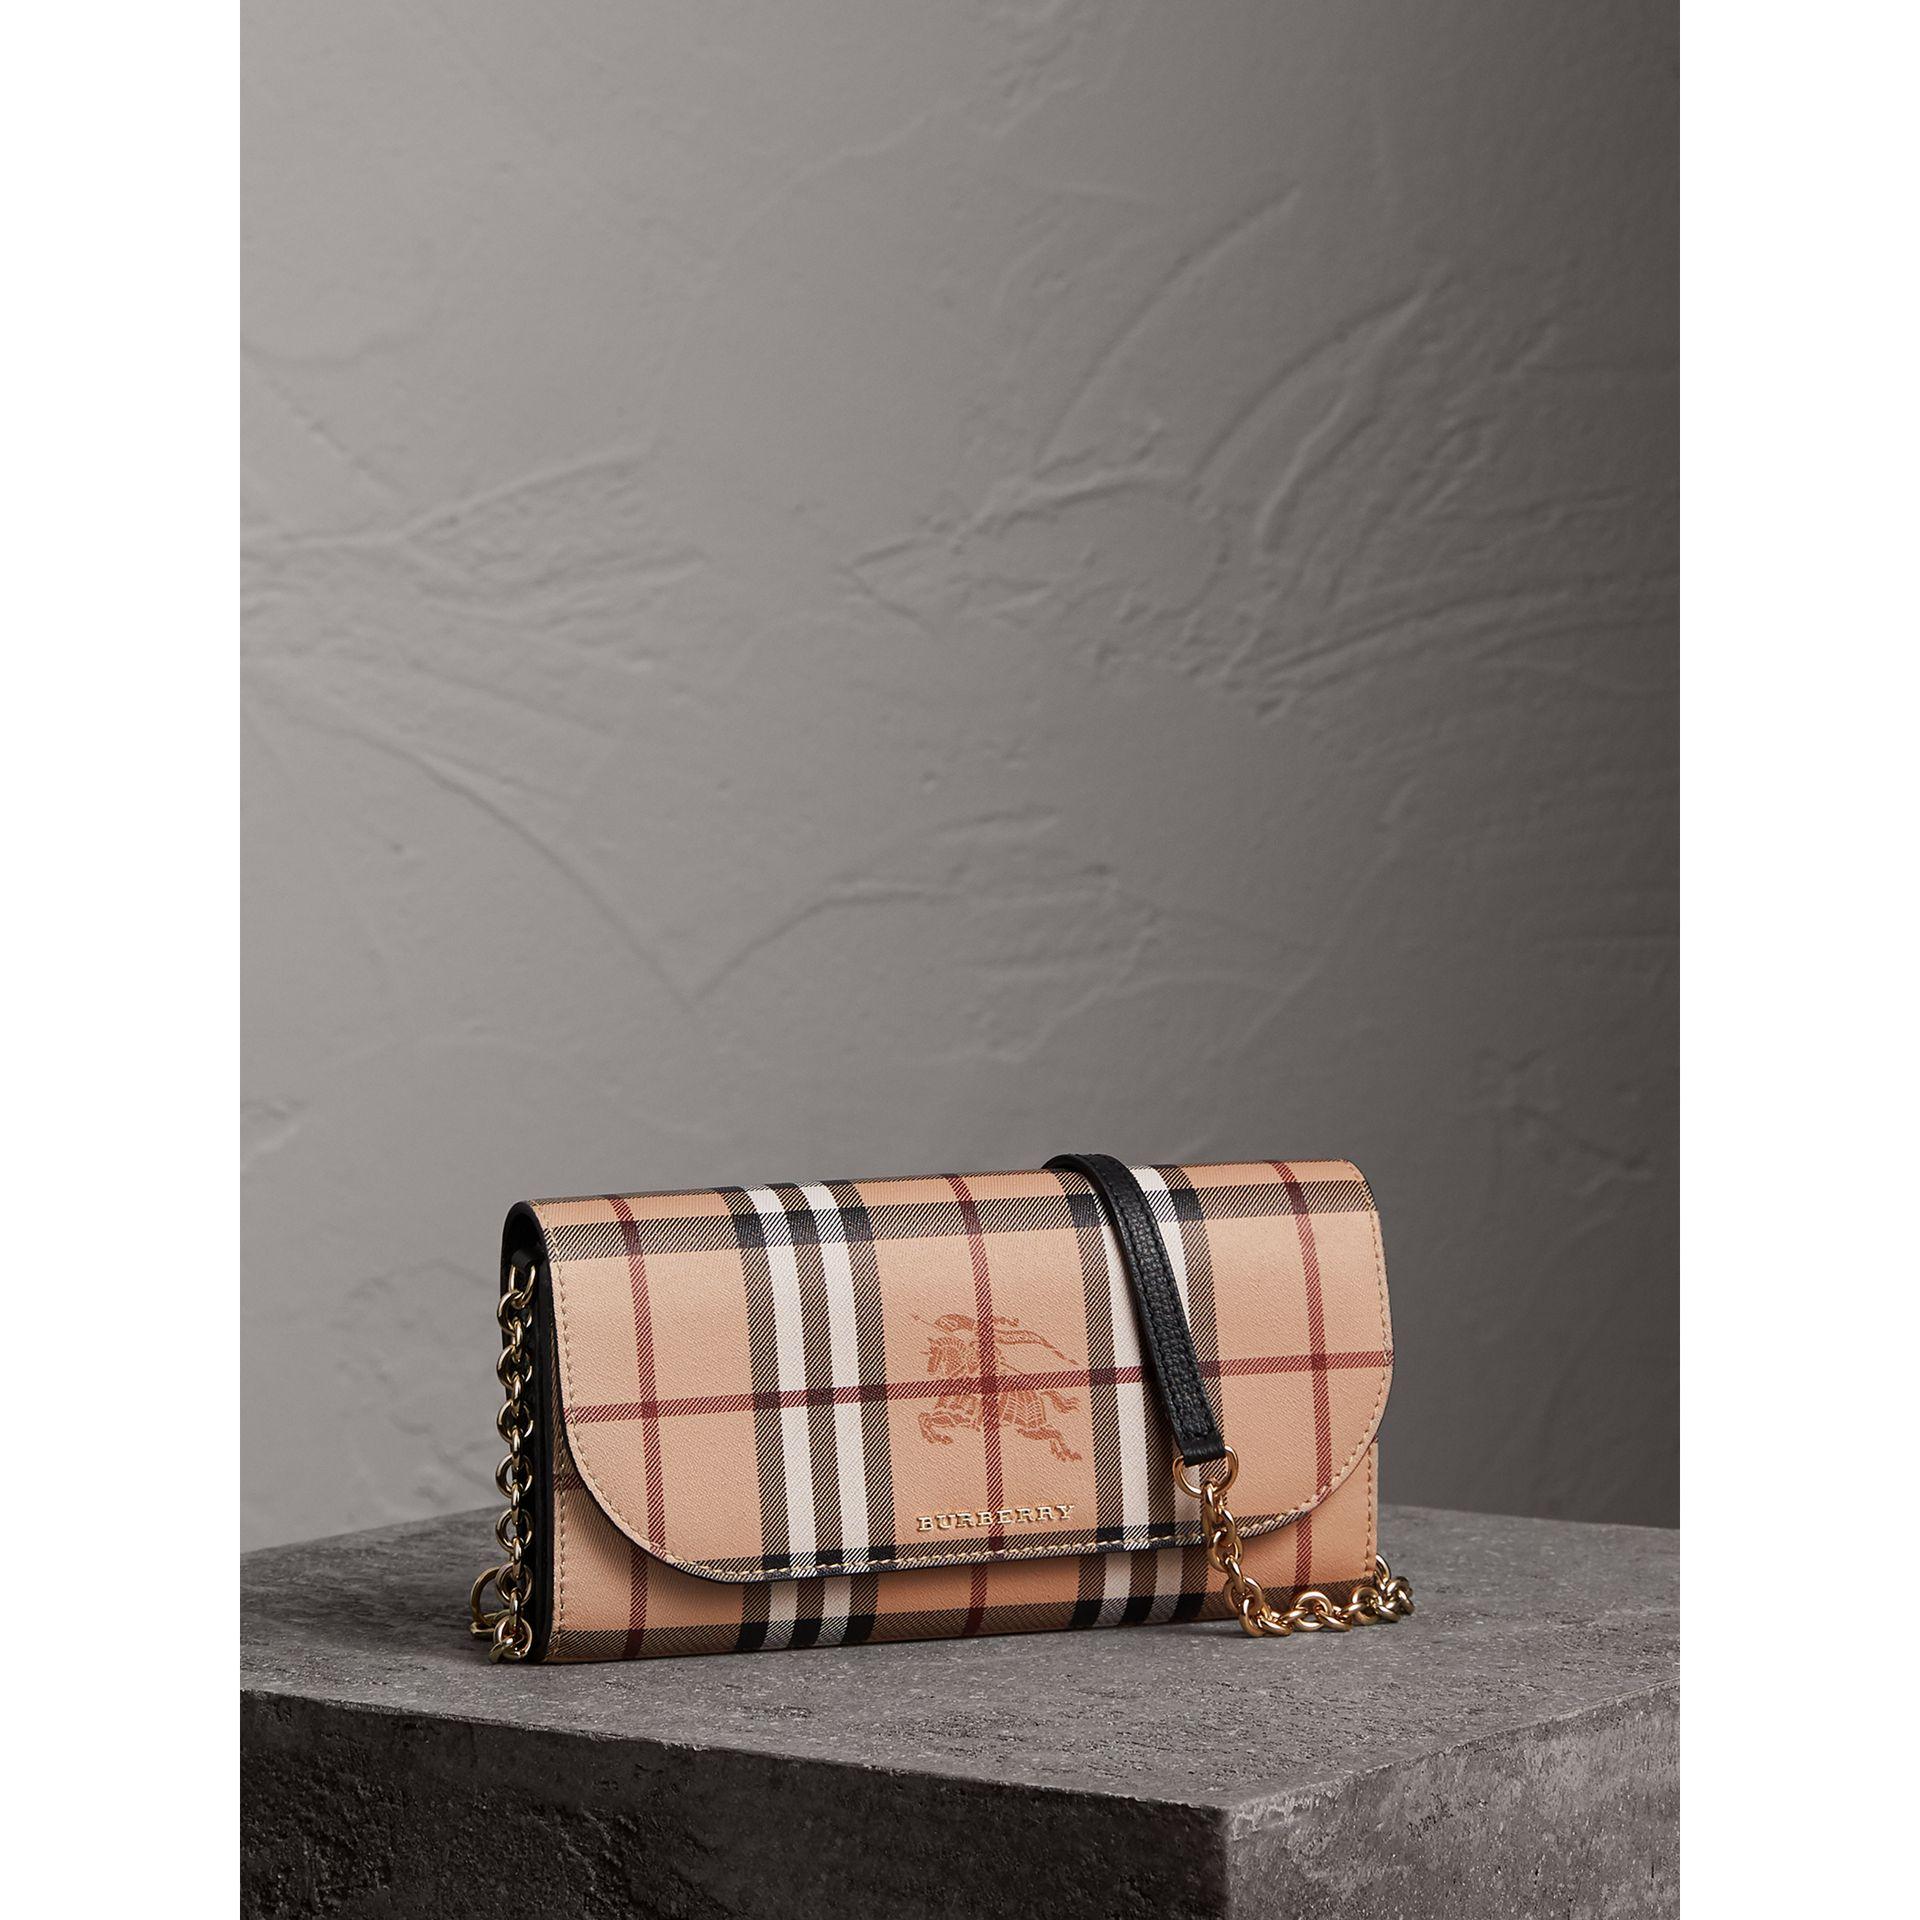 Leather Trim Haymarket Check Wallet with Chain in Black - Women | Burberry United Kingdom - gallery image 1